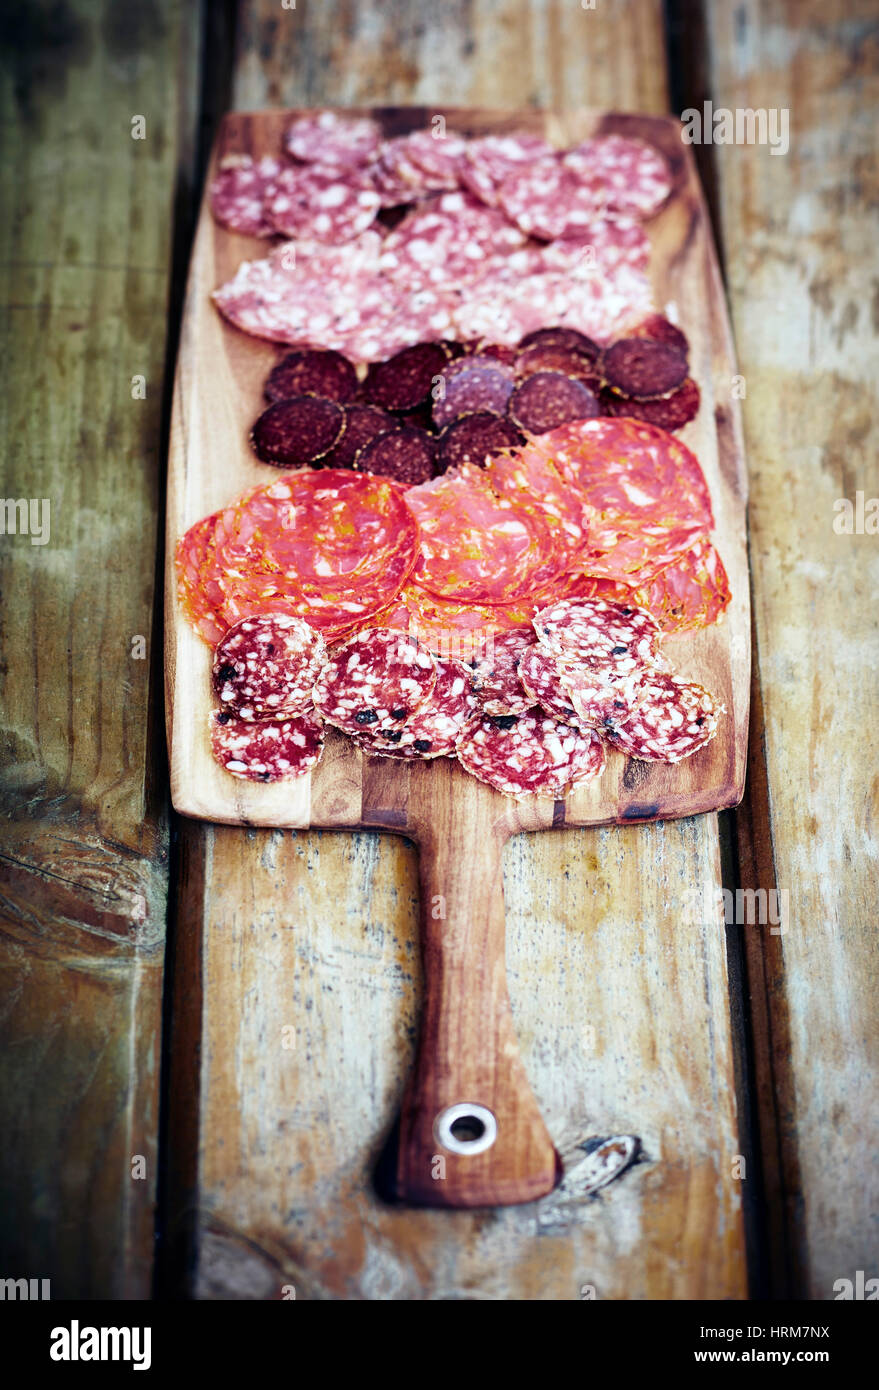 Antipasti of different cured meats and salami - Stock Image